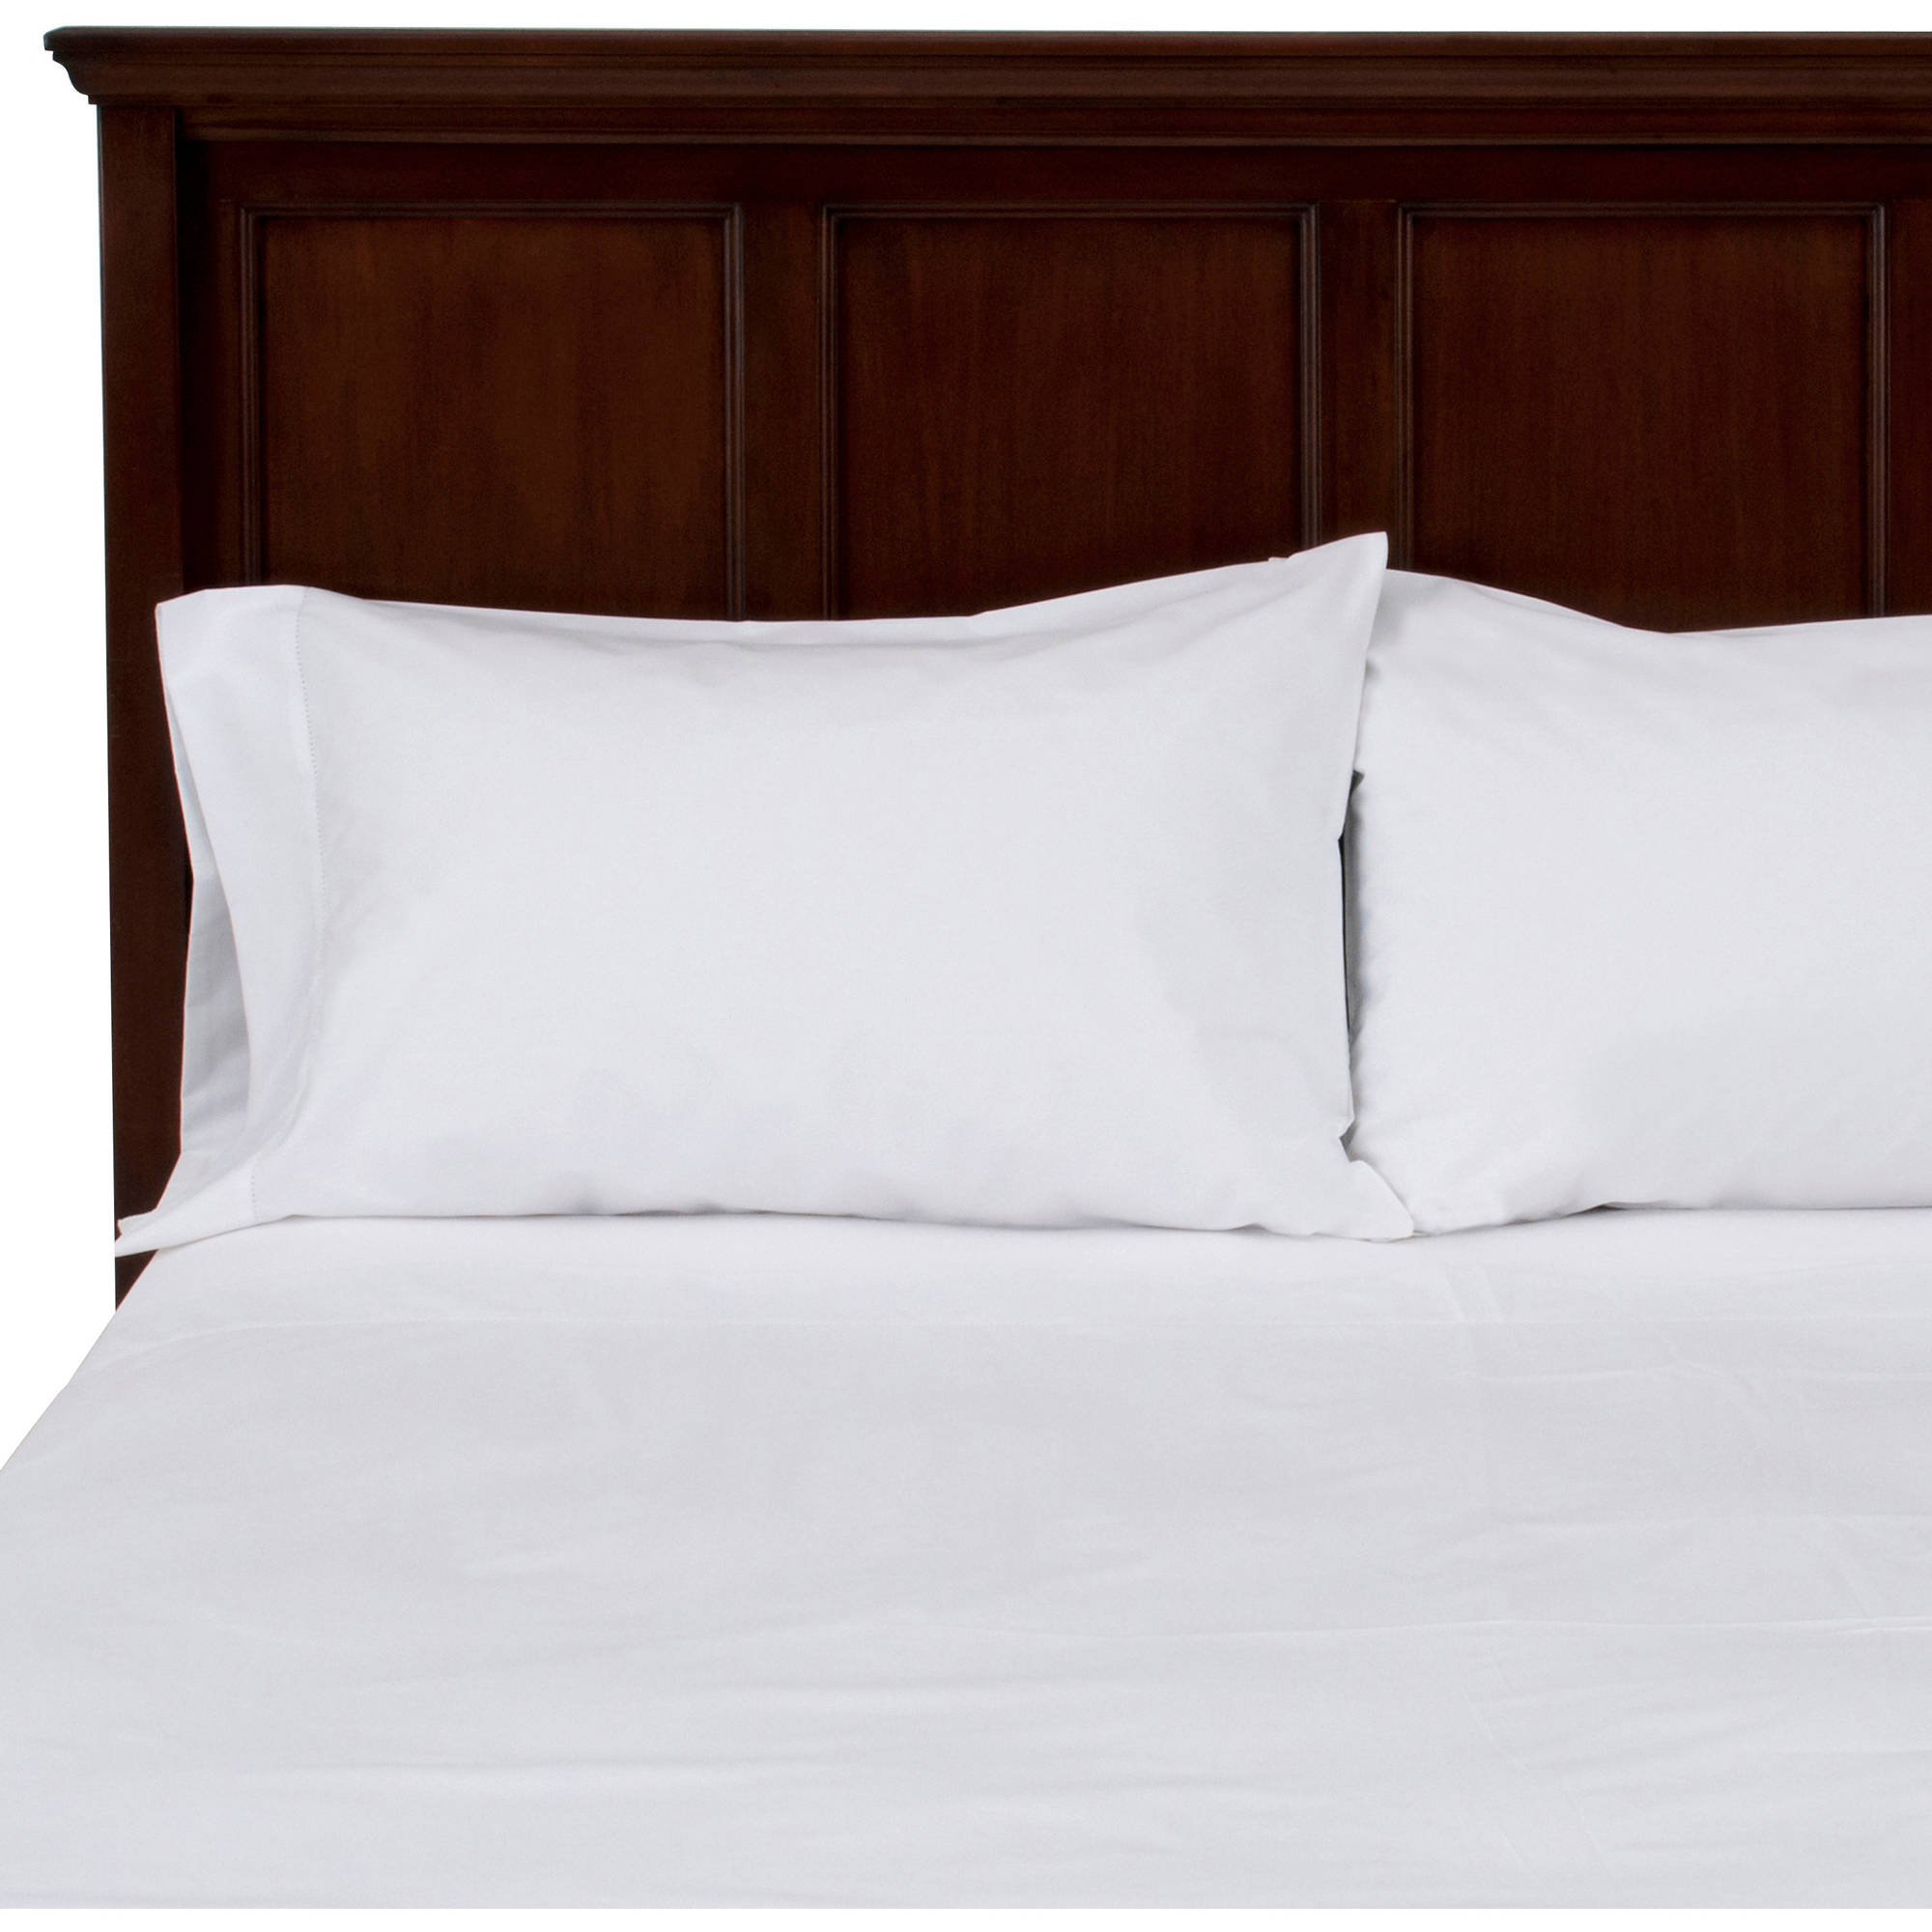 Mainstays 250-Thread Count Sheet Set